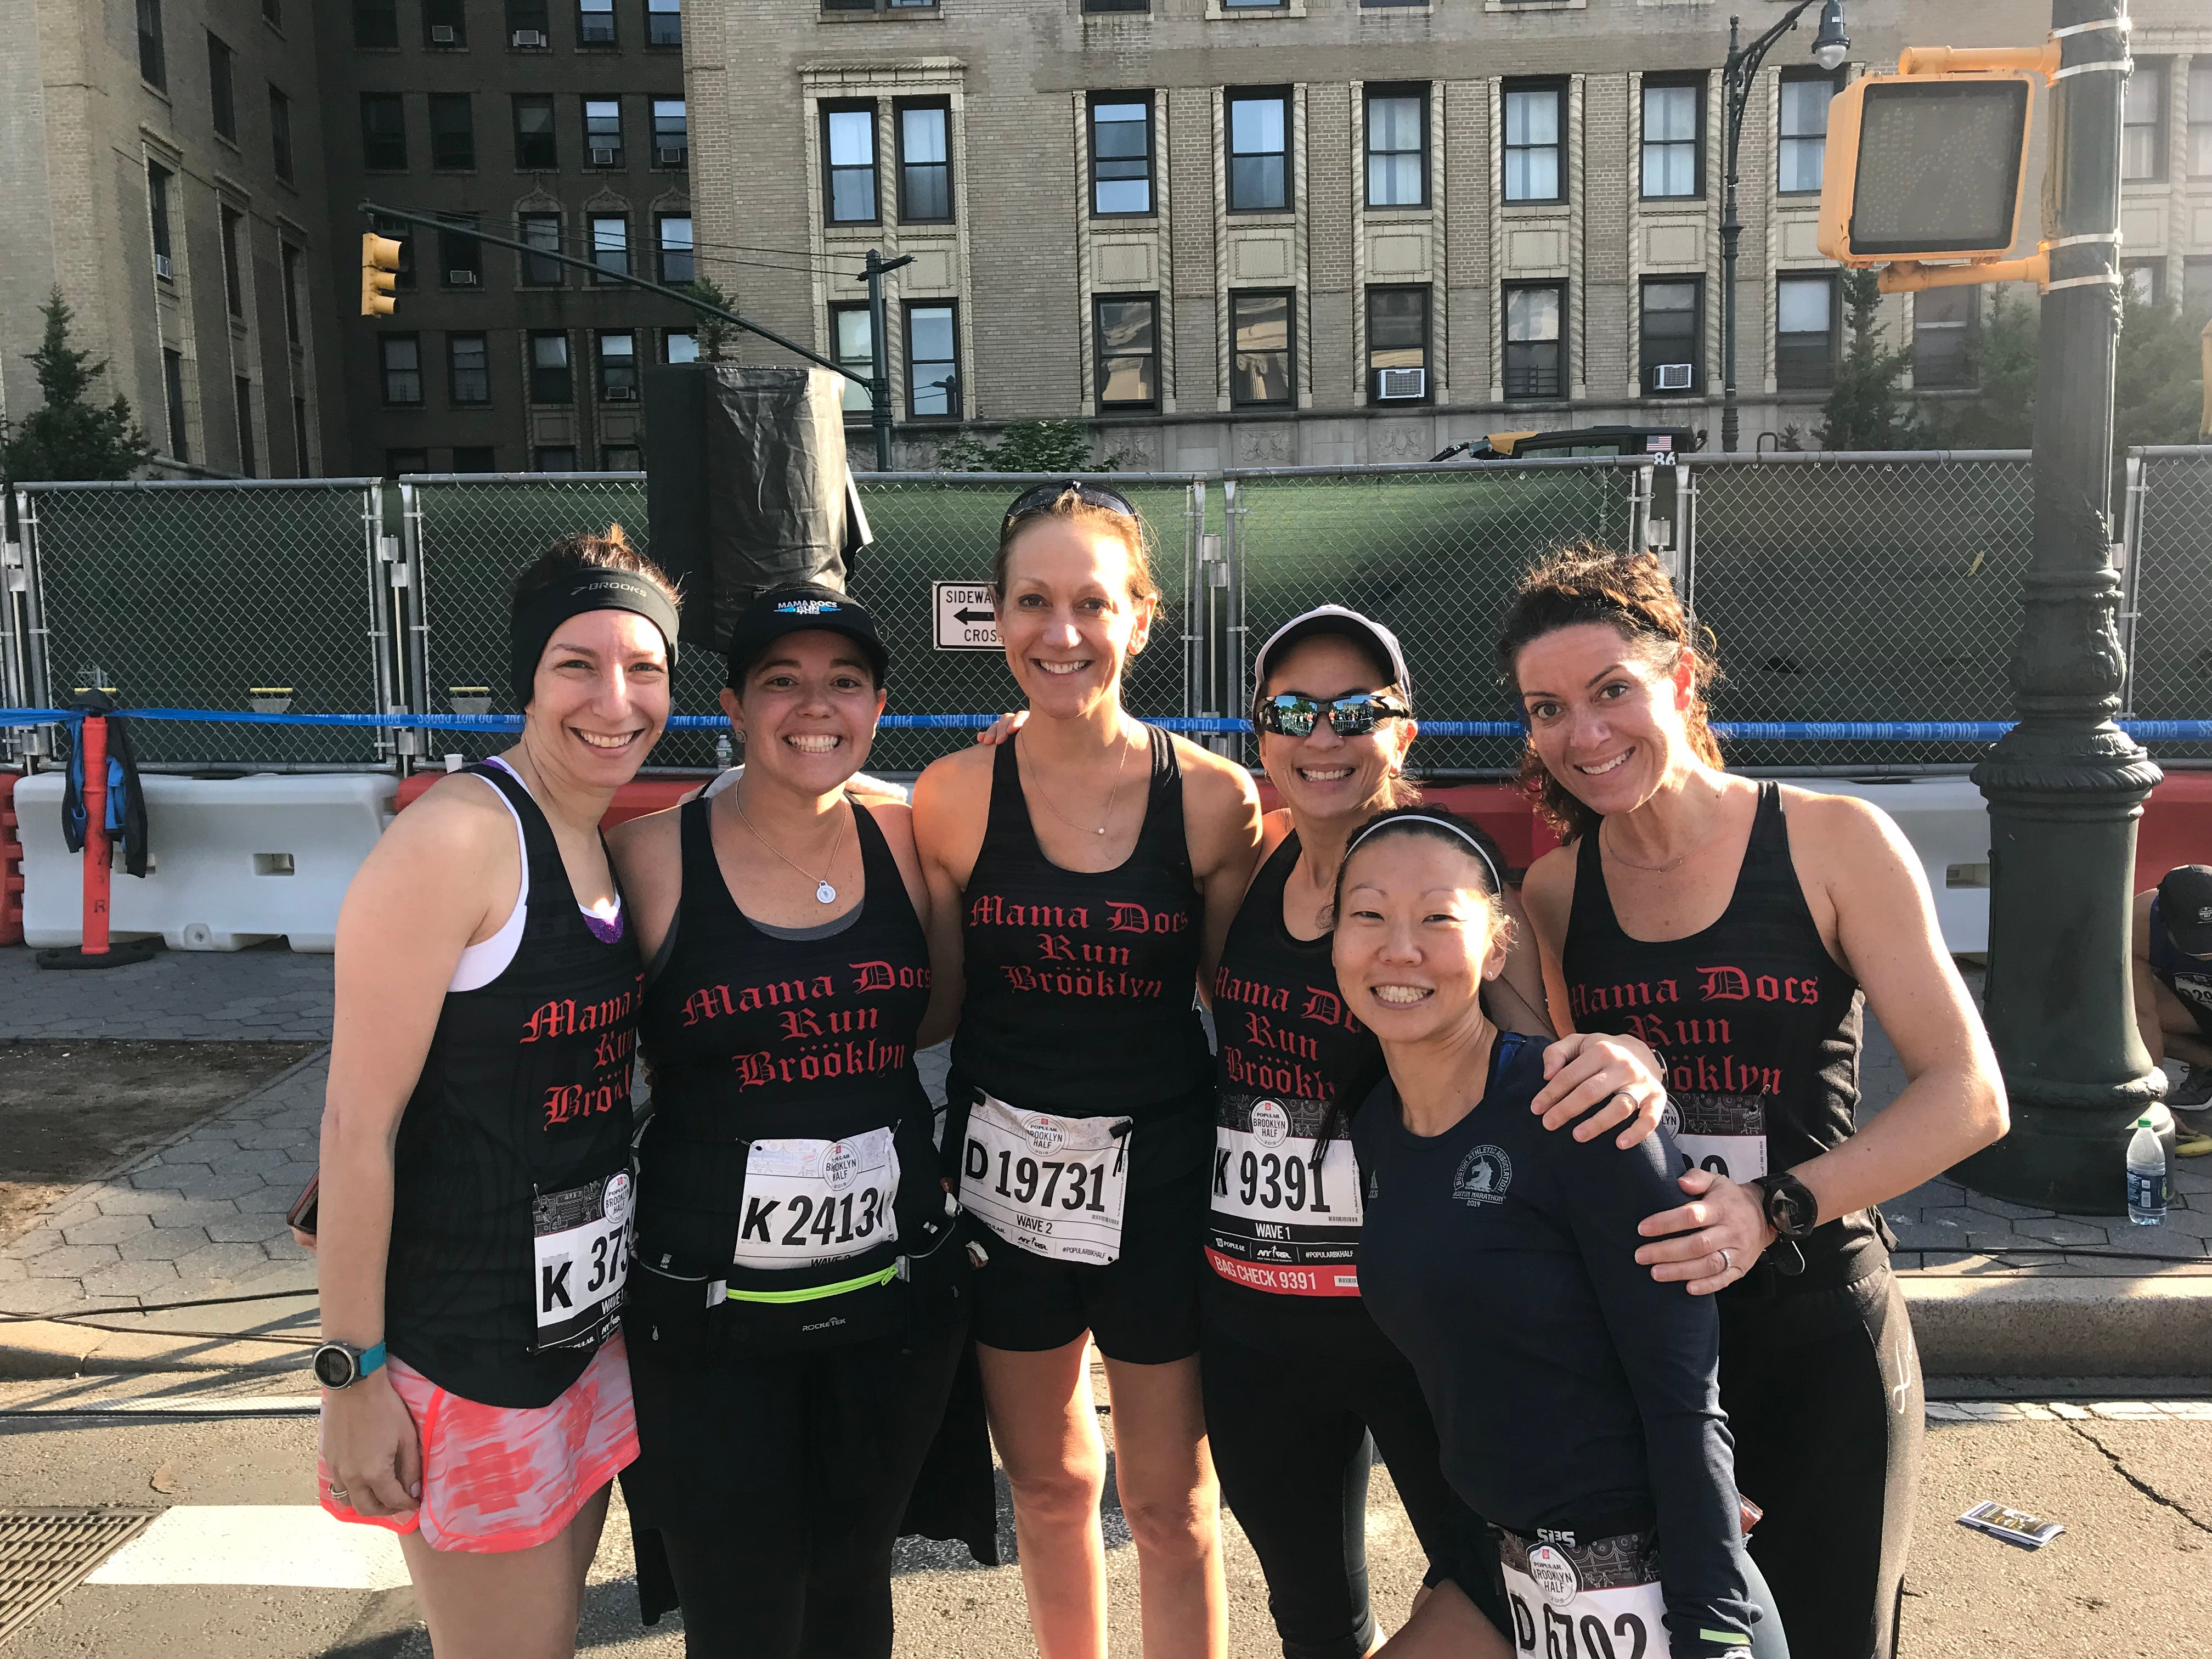 The Mama Docs online community often meets up in real life, like at the 2019 Boston Marathon.